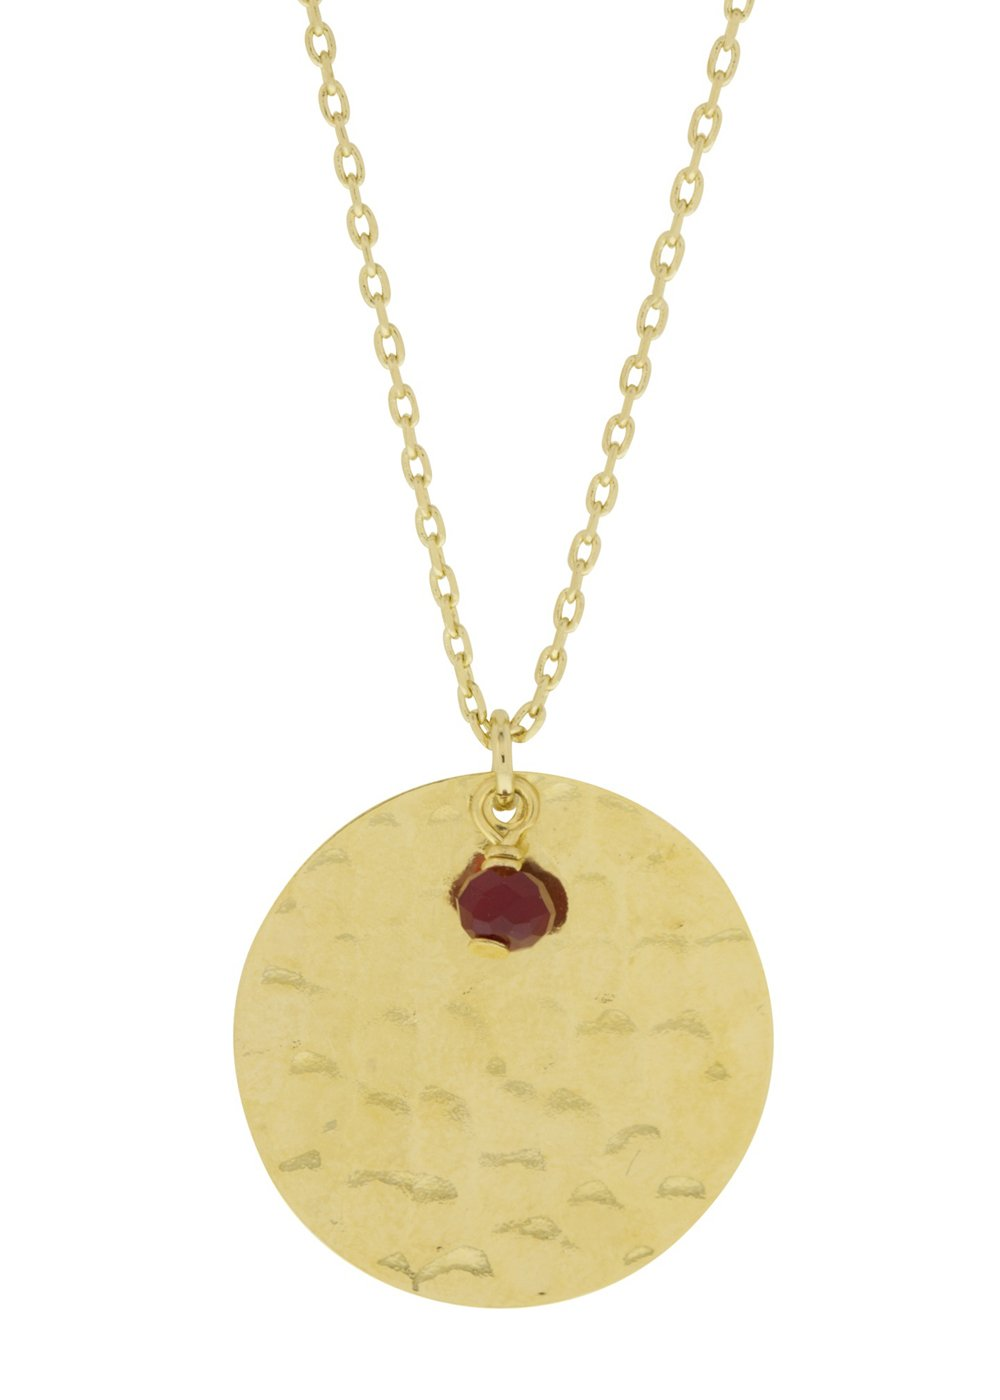 Talisman Red Crystal Necklace Lesprit Parisien - Necklace Lesprit Parisien